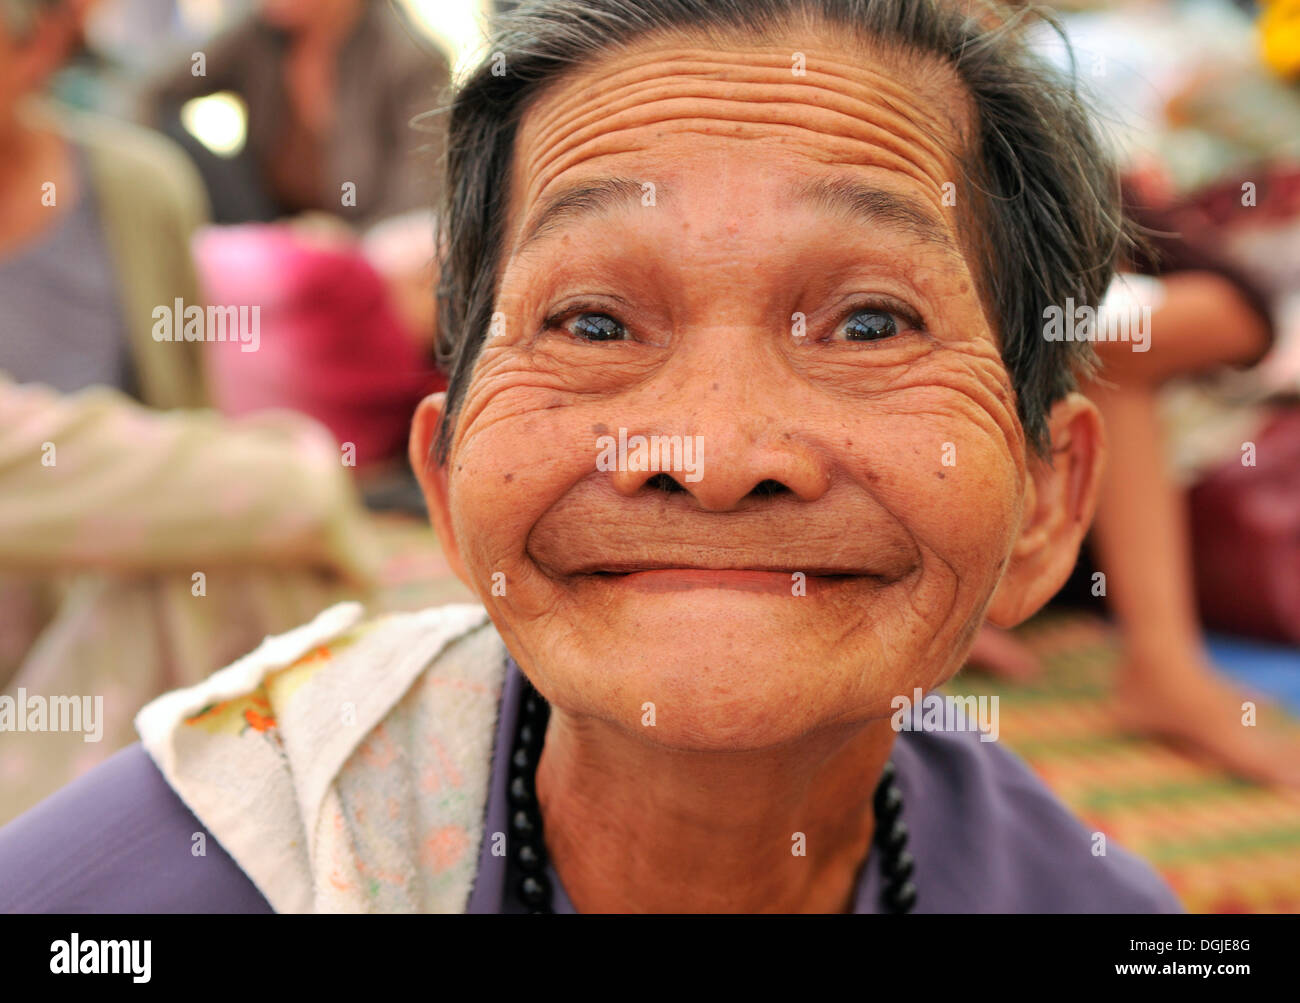 Grimacing old woman, Vietnam, Southeast Asia - Stock Image